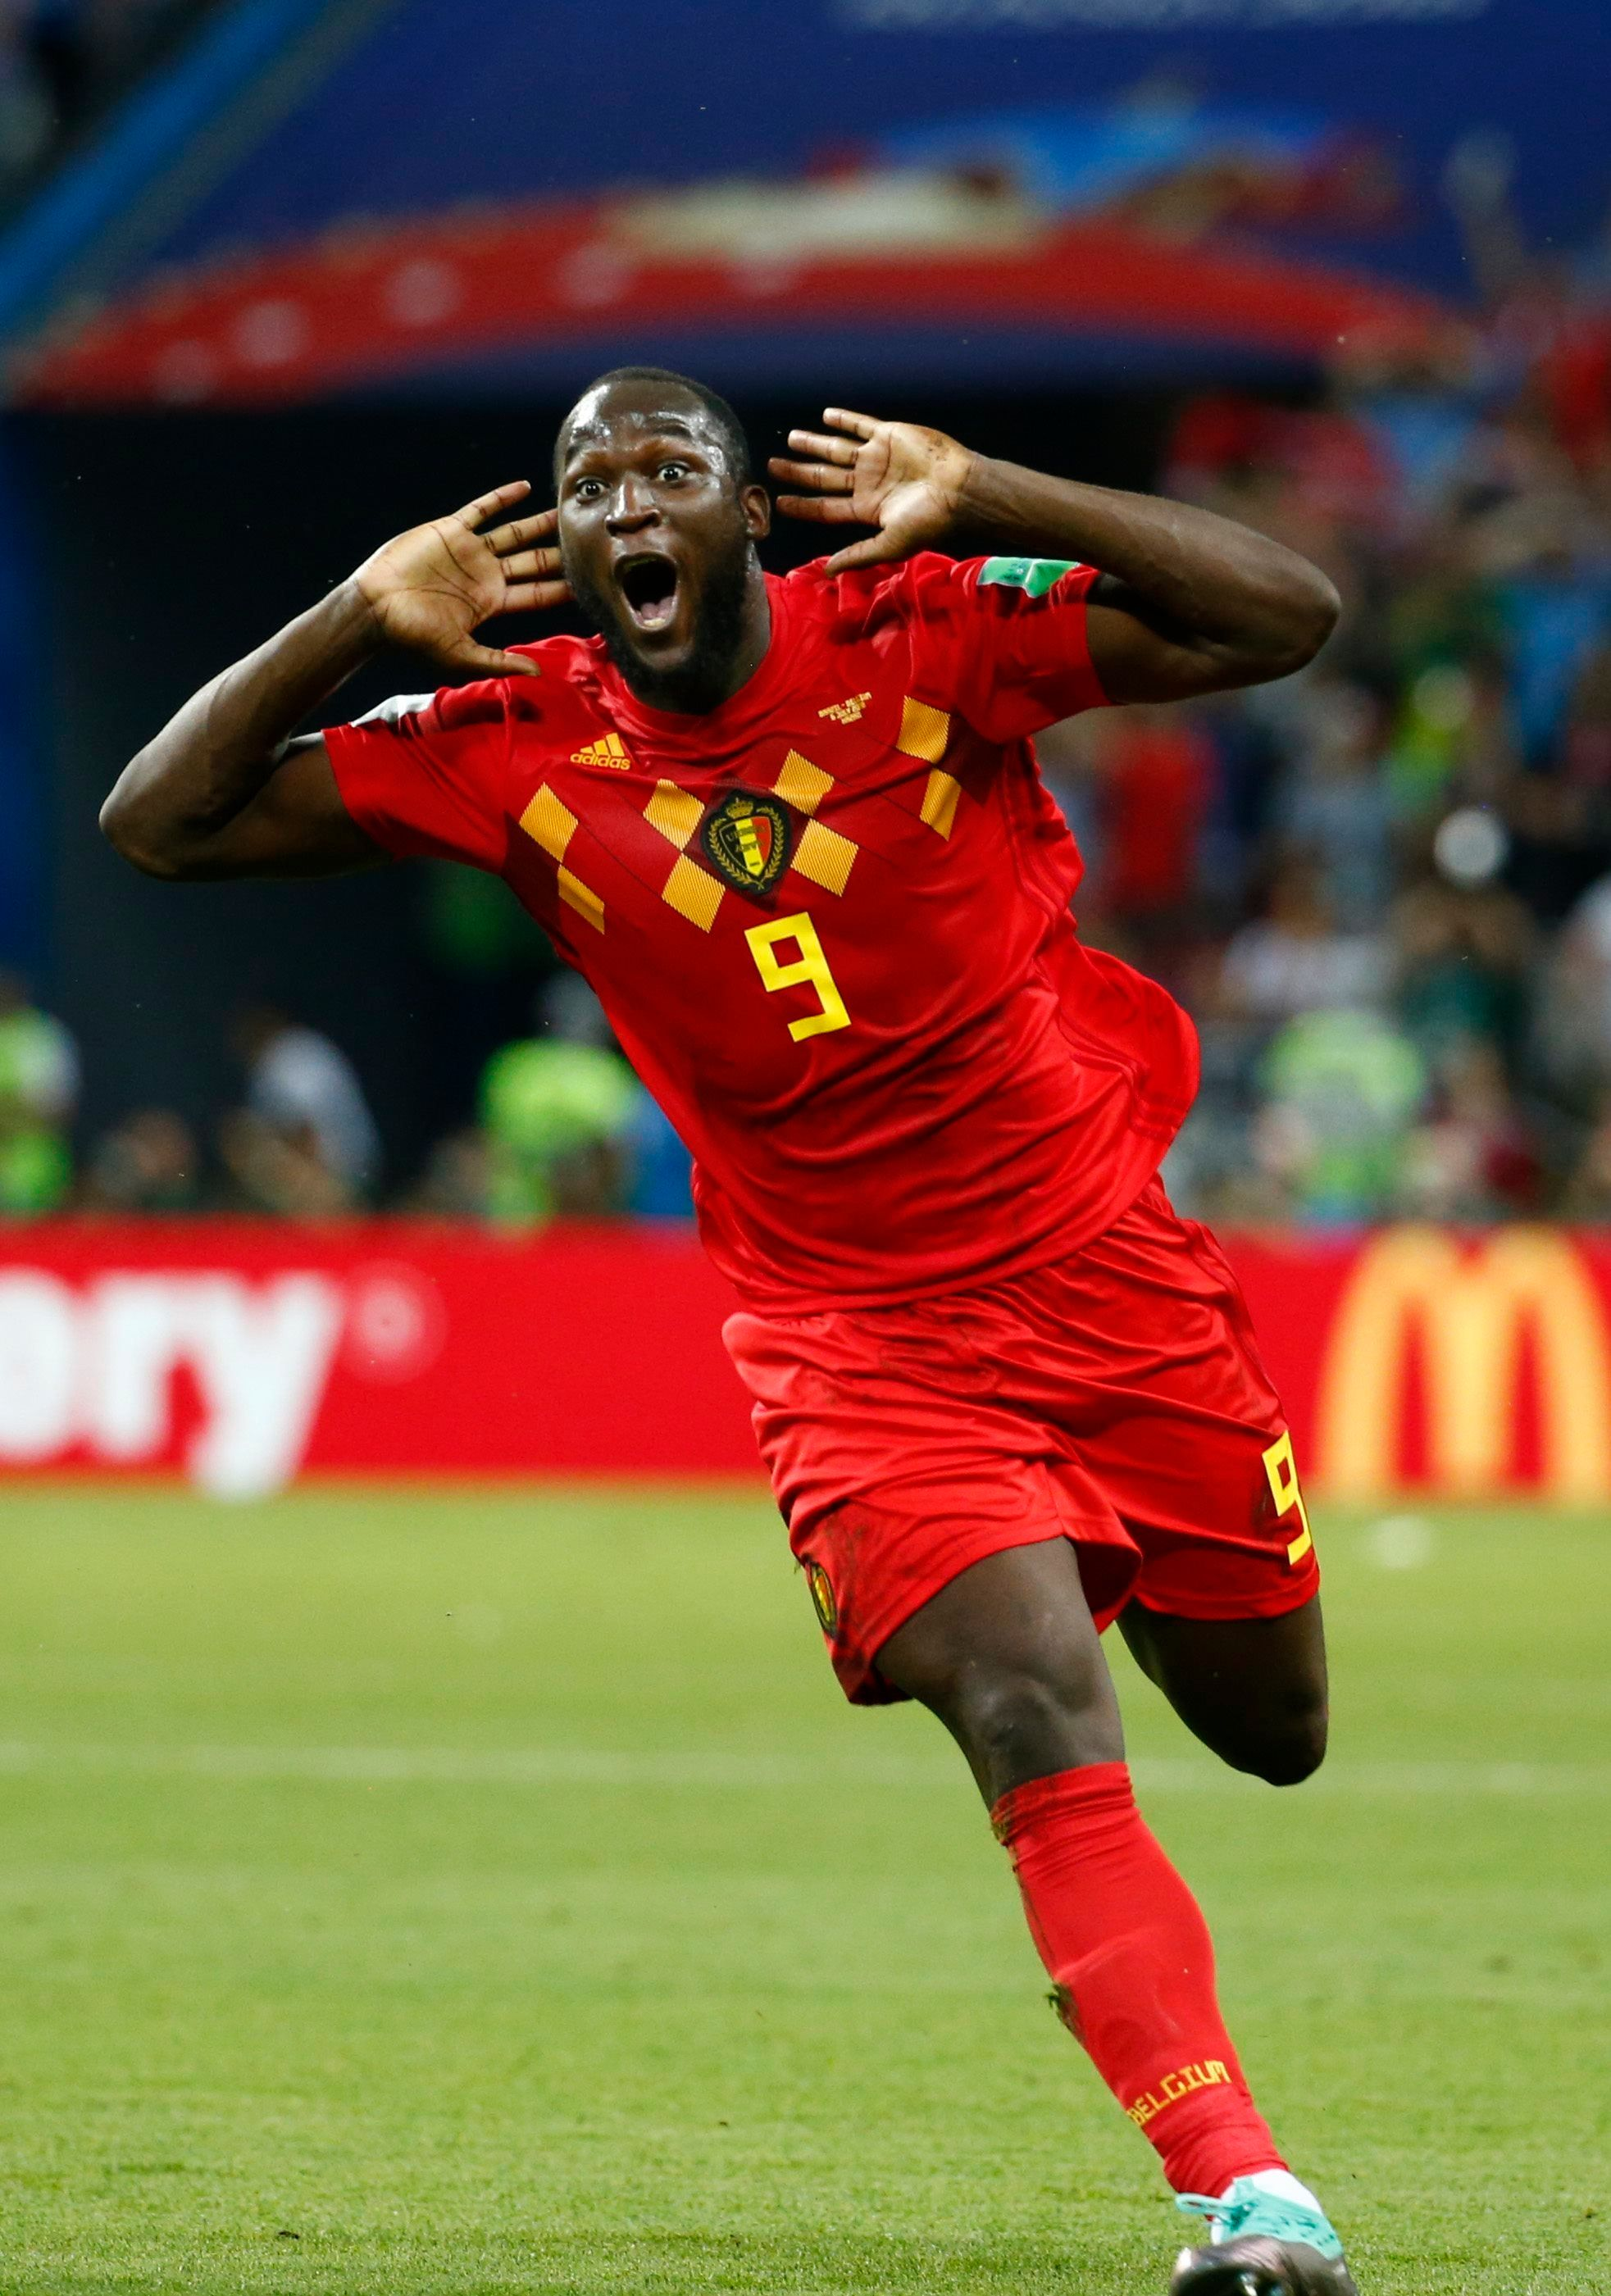 The World Cup's Most Brilliant Player Can Dominate Without